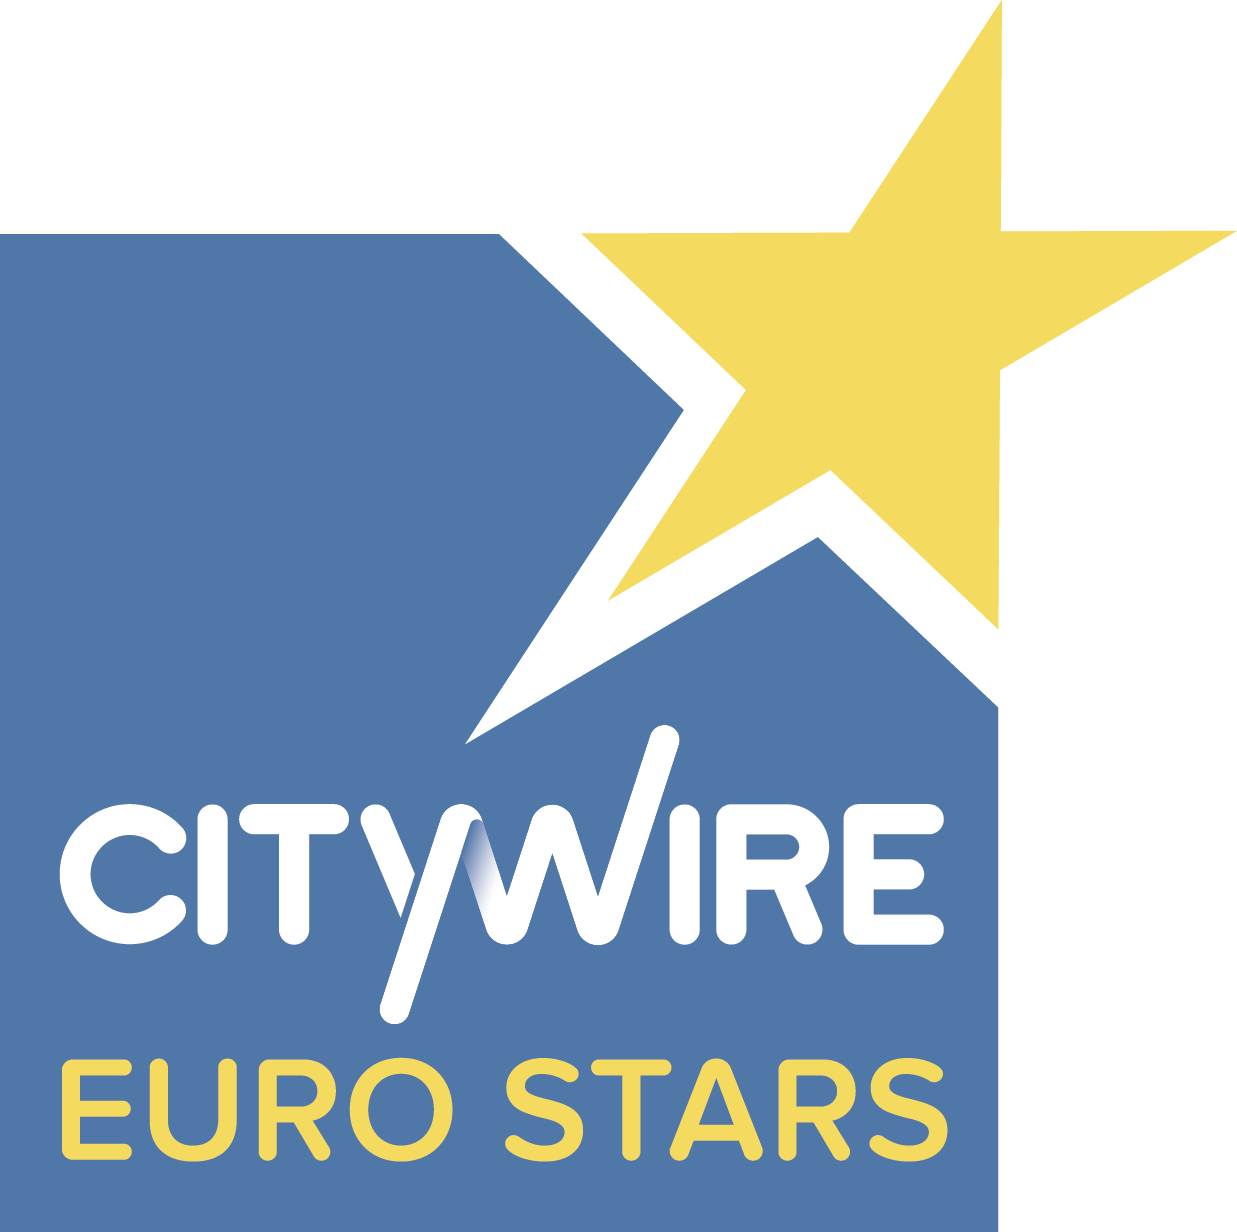 Citywire Euro Stars logo - 2017.png